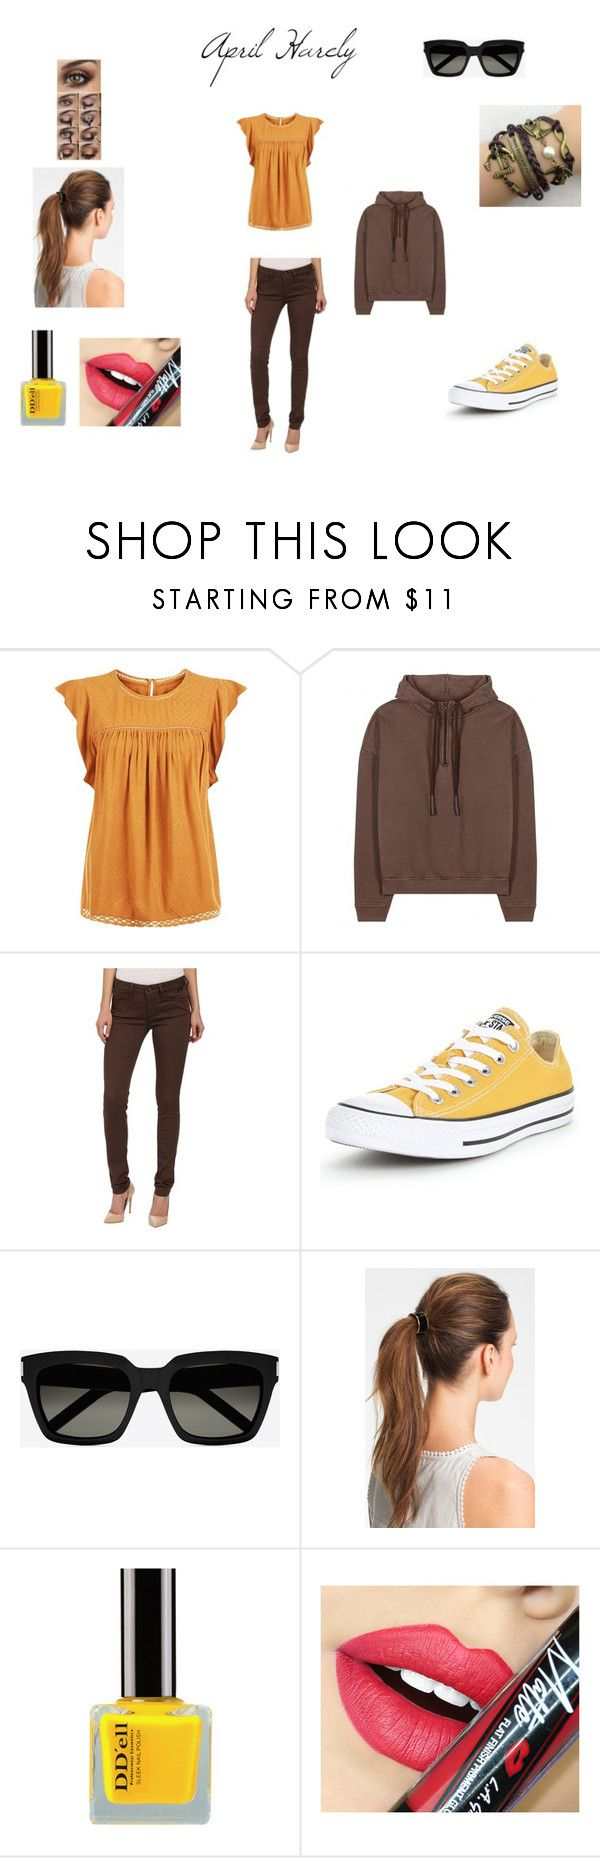 """wonderland band-april harely"" by demeters-child ❤ liked on Polyvore featuring New Look, adidas Originals, Mavi, Converse, Yves Saint Laurent, L. Erickson and Fiebiger"